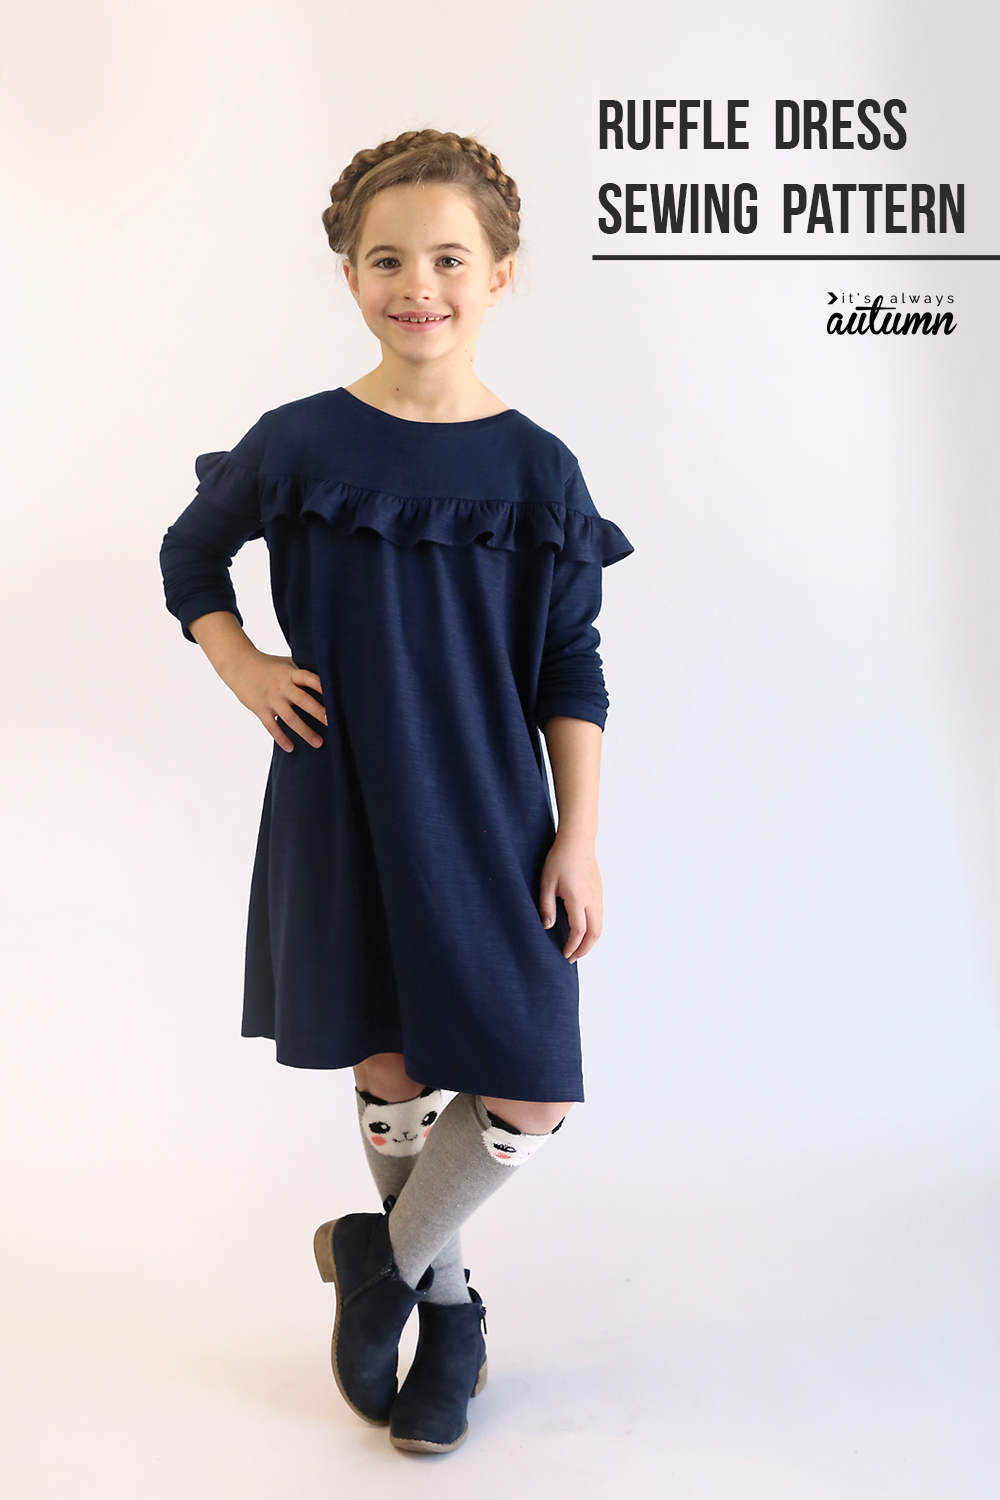 Get the free sewing pattern for this girls ruffle dress in size 7/8.